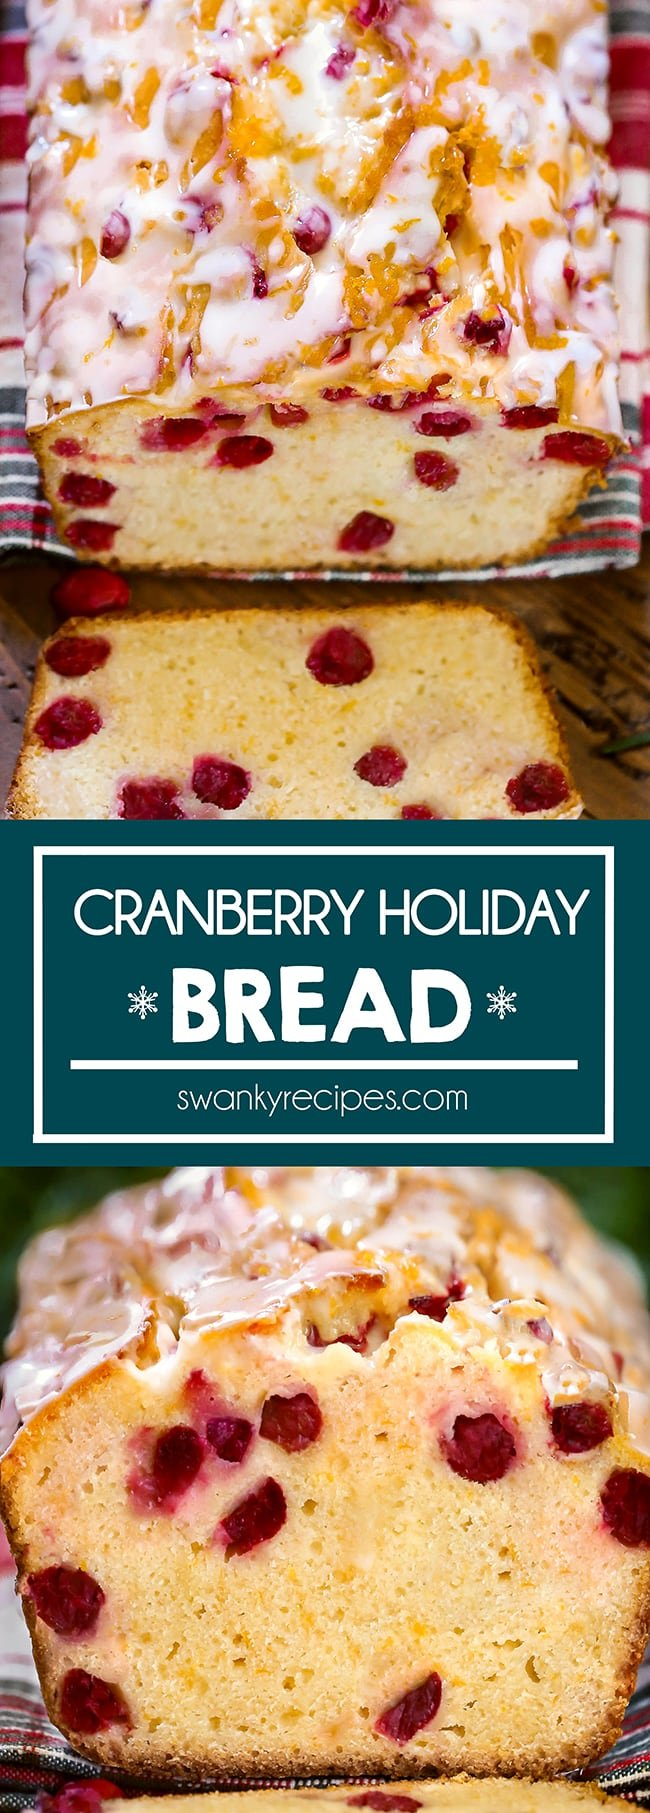 Cranberry Holiday Bread - Cranberry loaf bread served on a red, gree, and white Christmas linen napkin and wooden board. Top is iced in white frosting with orange zest and cranberries. Loaf sliced with a piece on the board. Text in center reads Cranberry Holiday Bread in blue boarder. Second image is the loaf up close facing forward with a cut slice sitting in front of loaf.